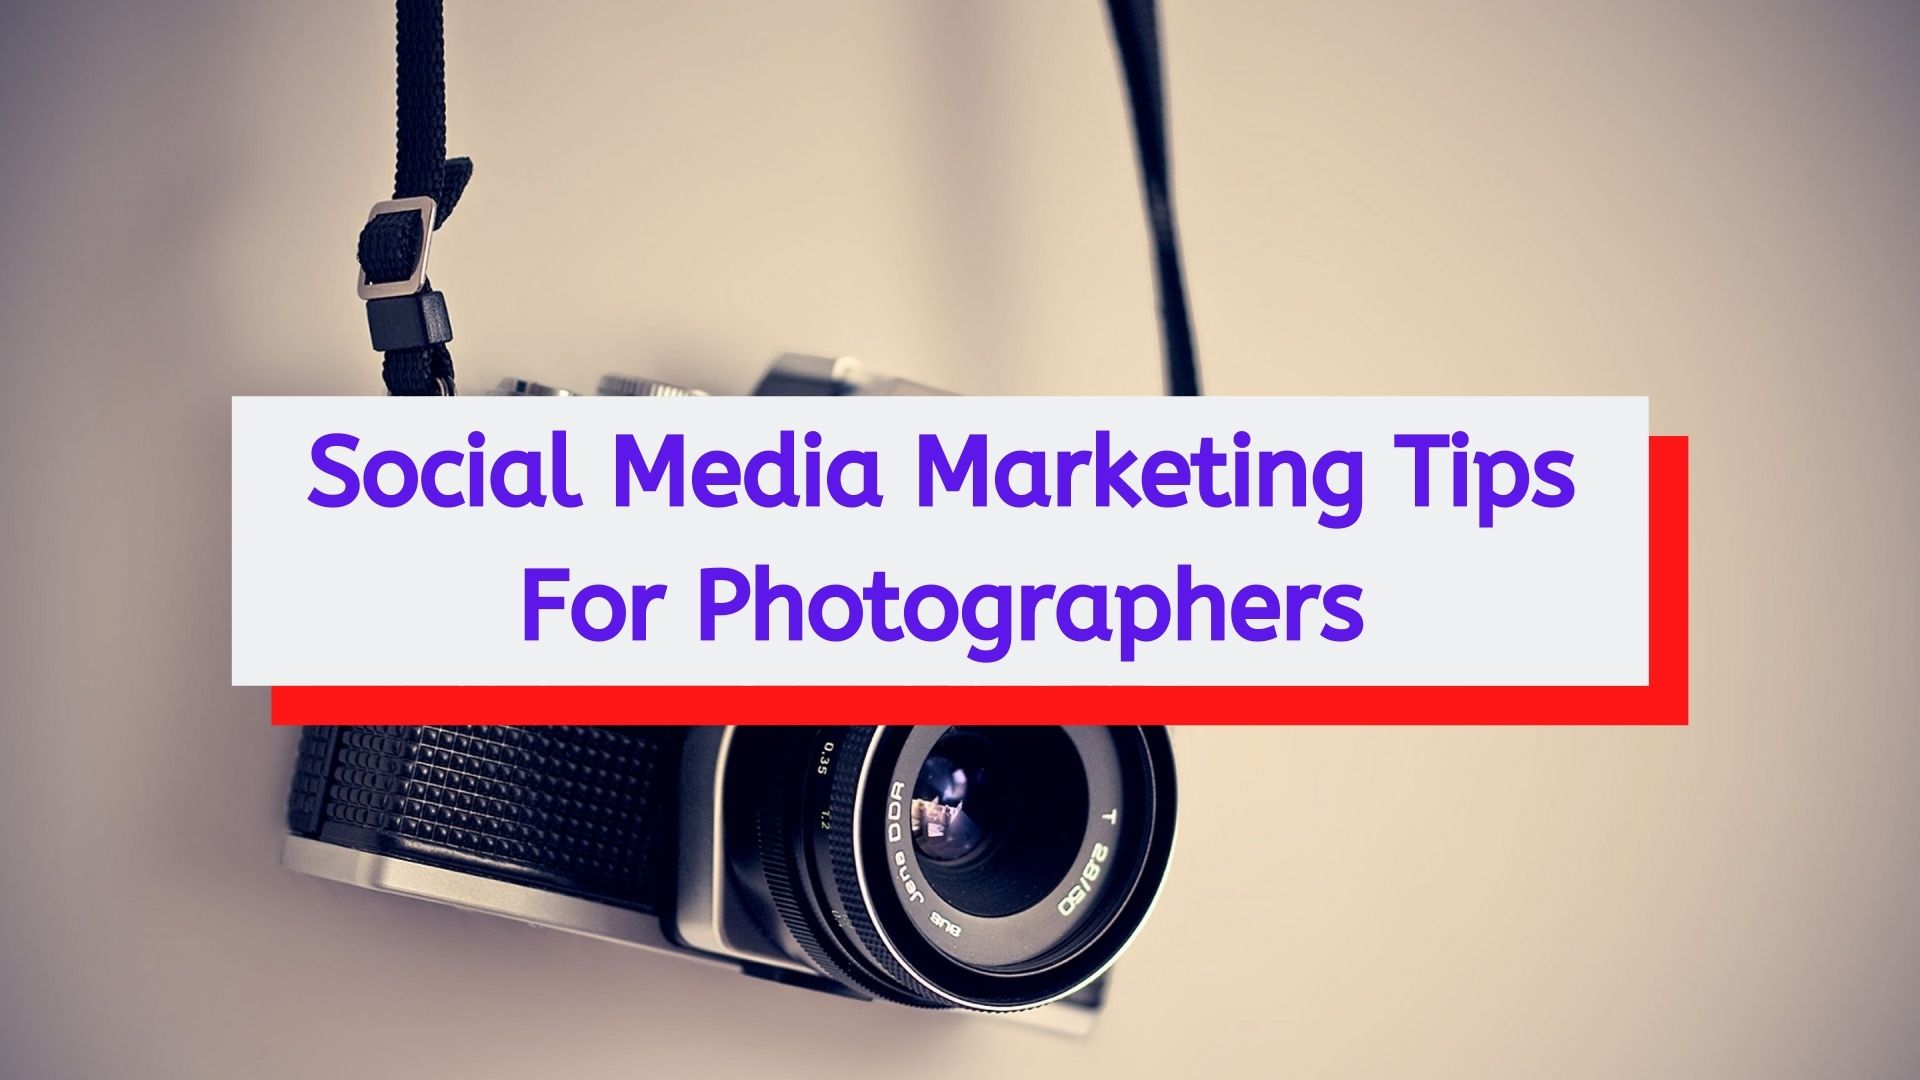 Social Media Marketing Tips For Photographers